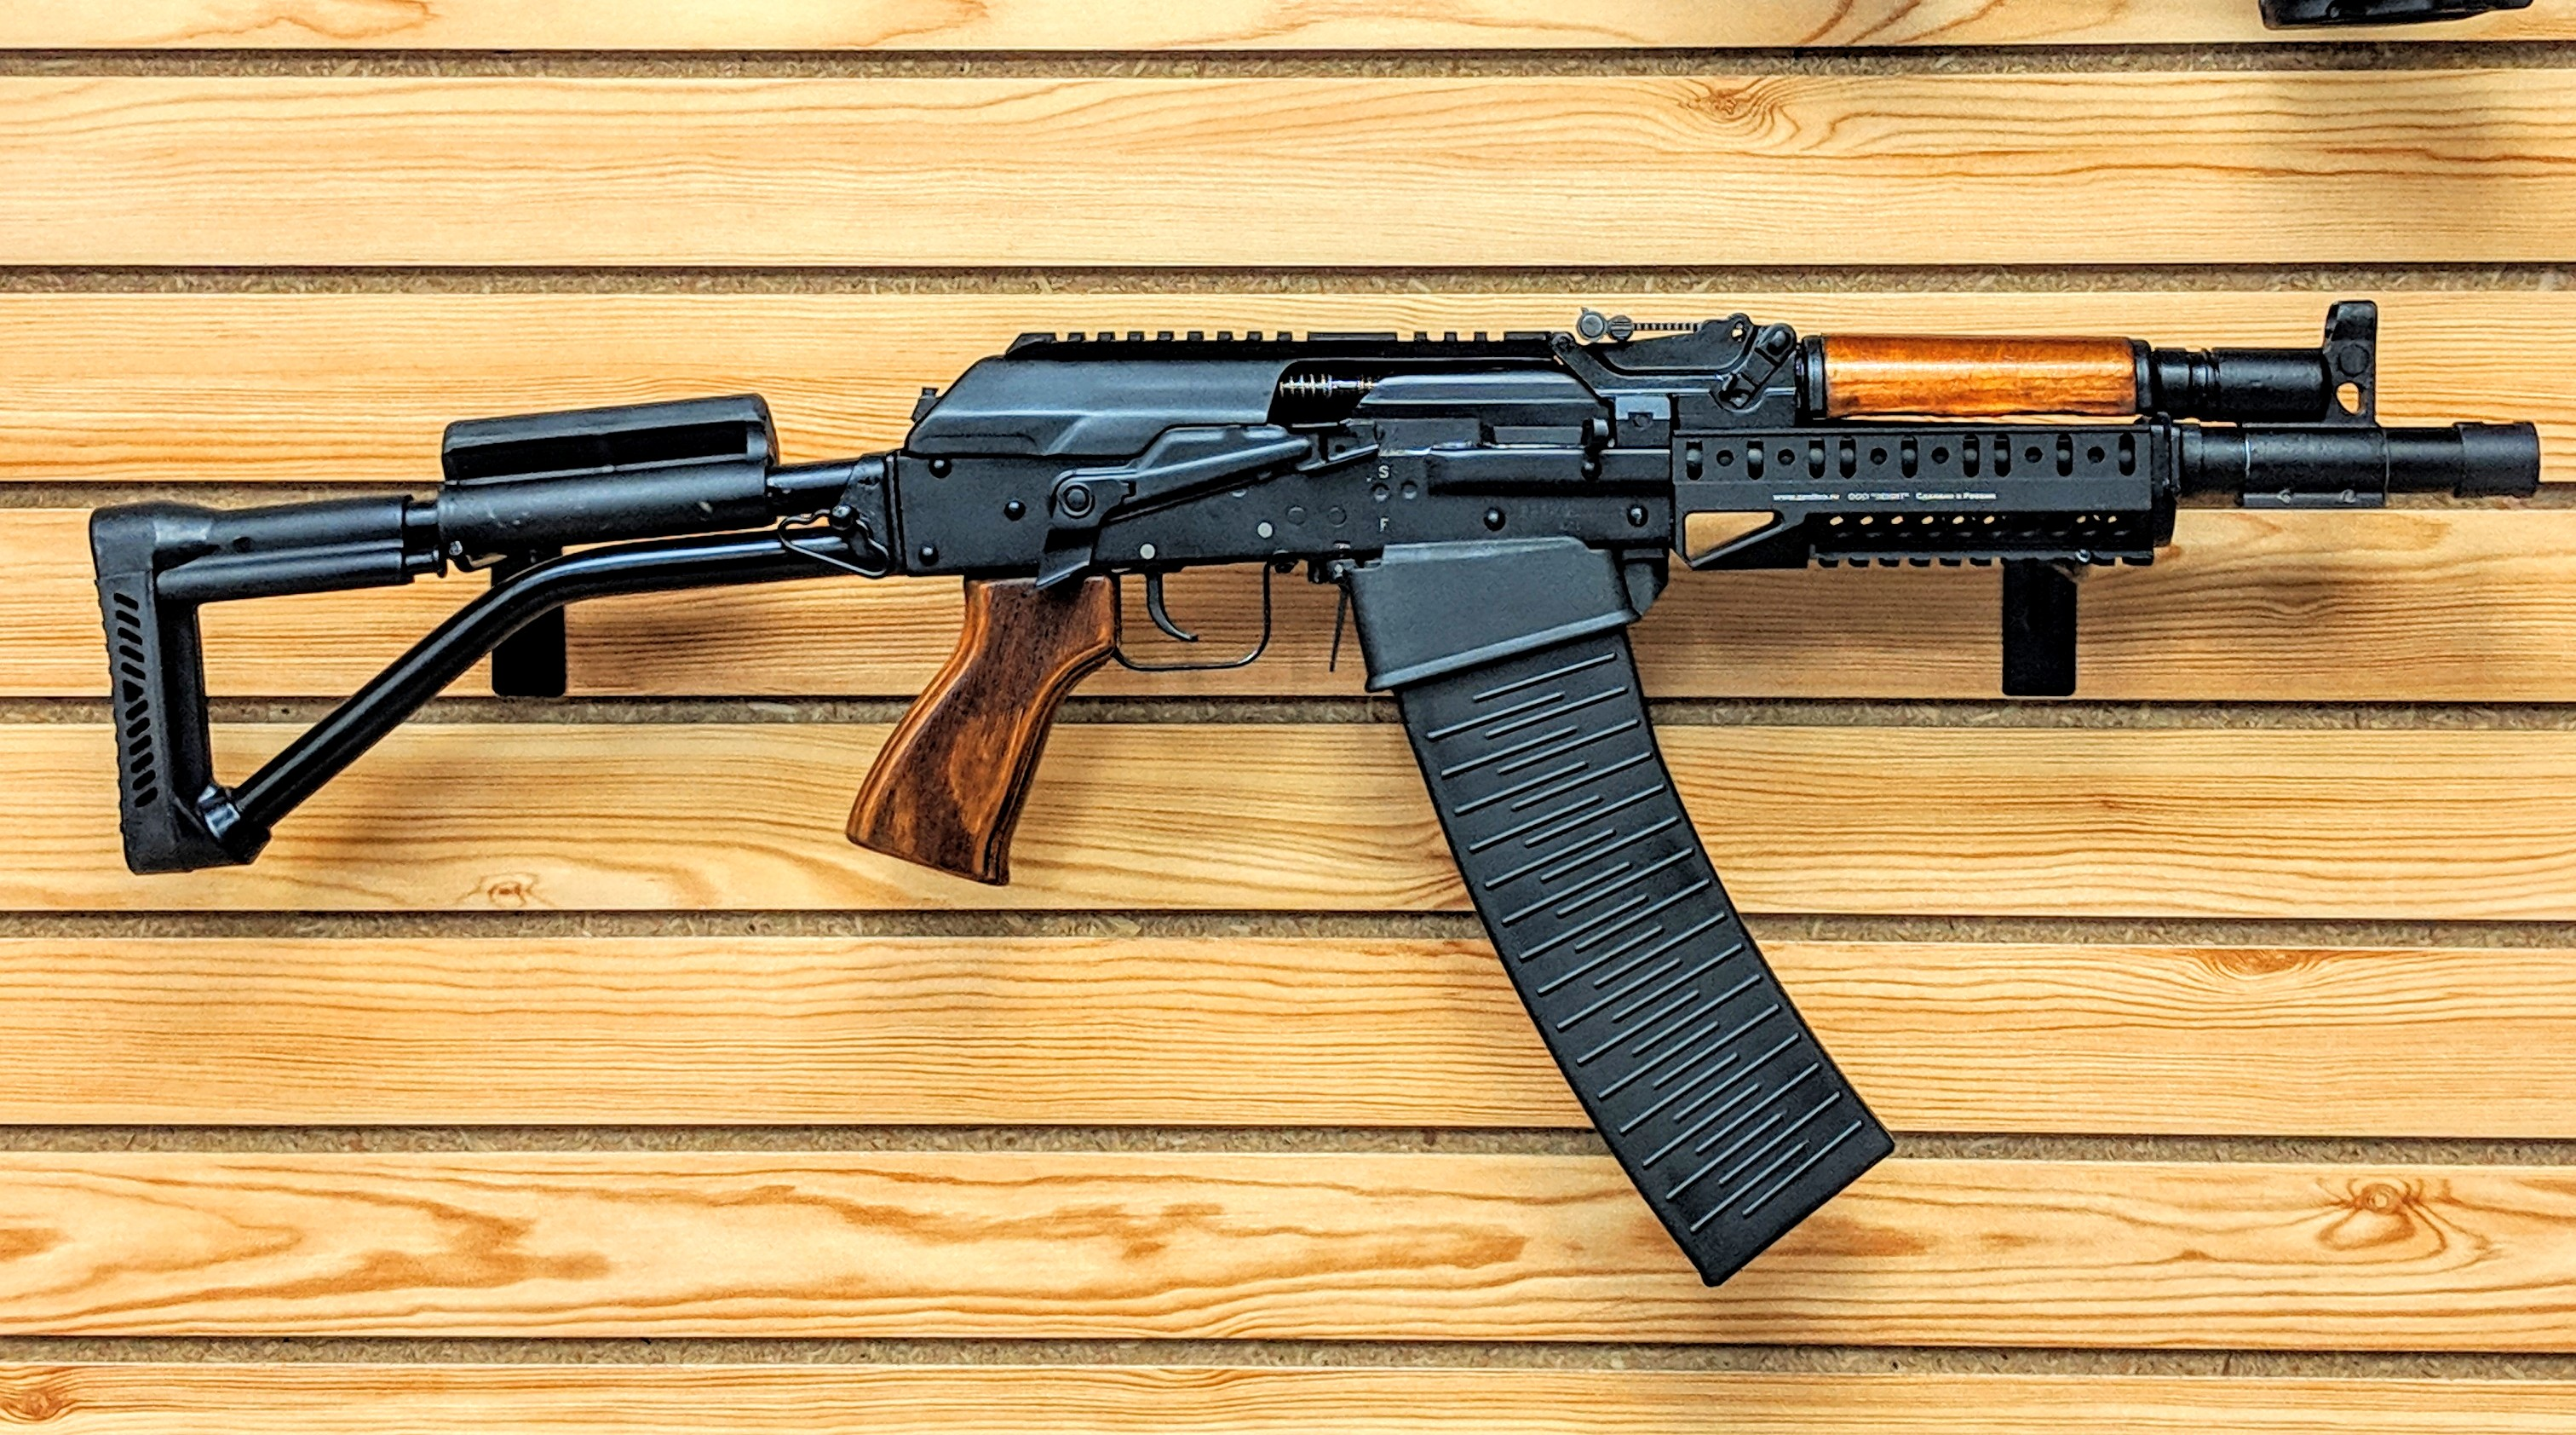 RP-1 AK Extended Charging Handle Knob - ZenitCo